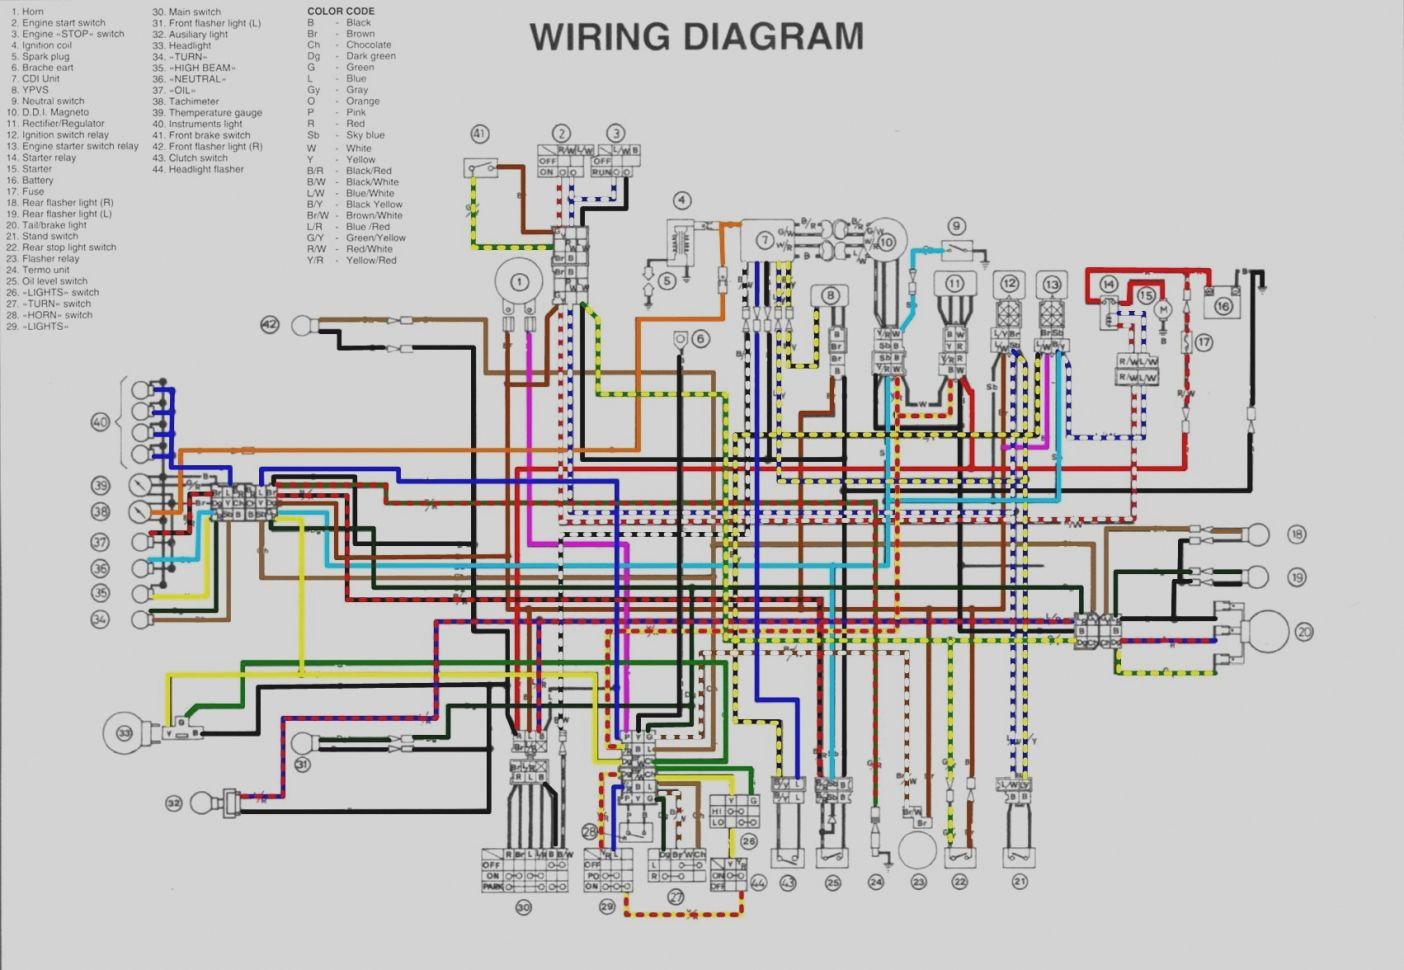 2004 Yfz 450 Wiring Diagram from i.pinimg.com